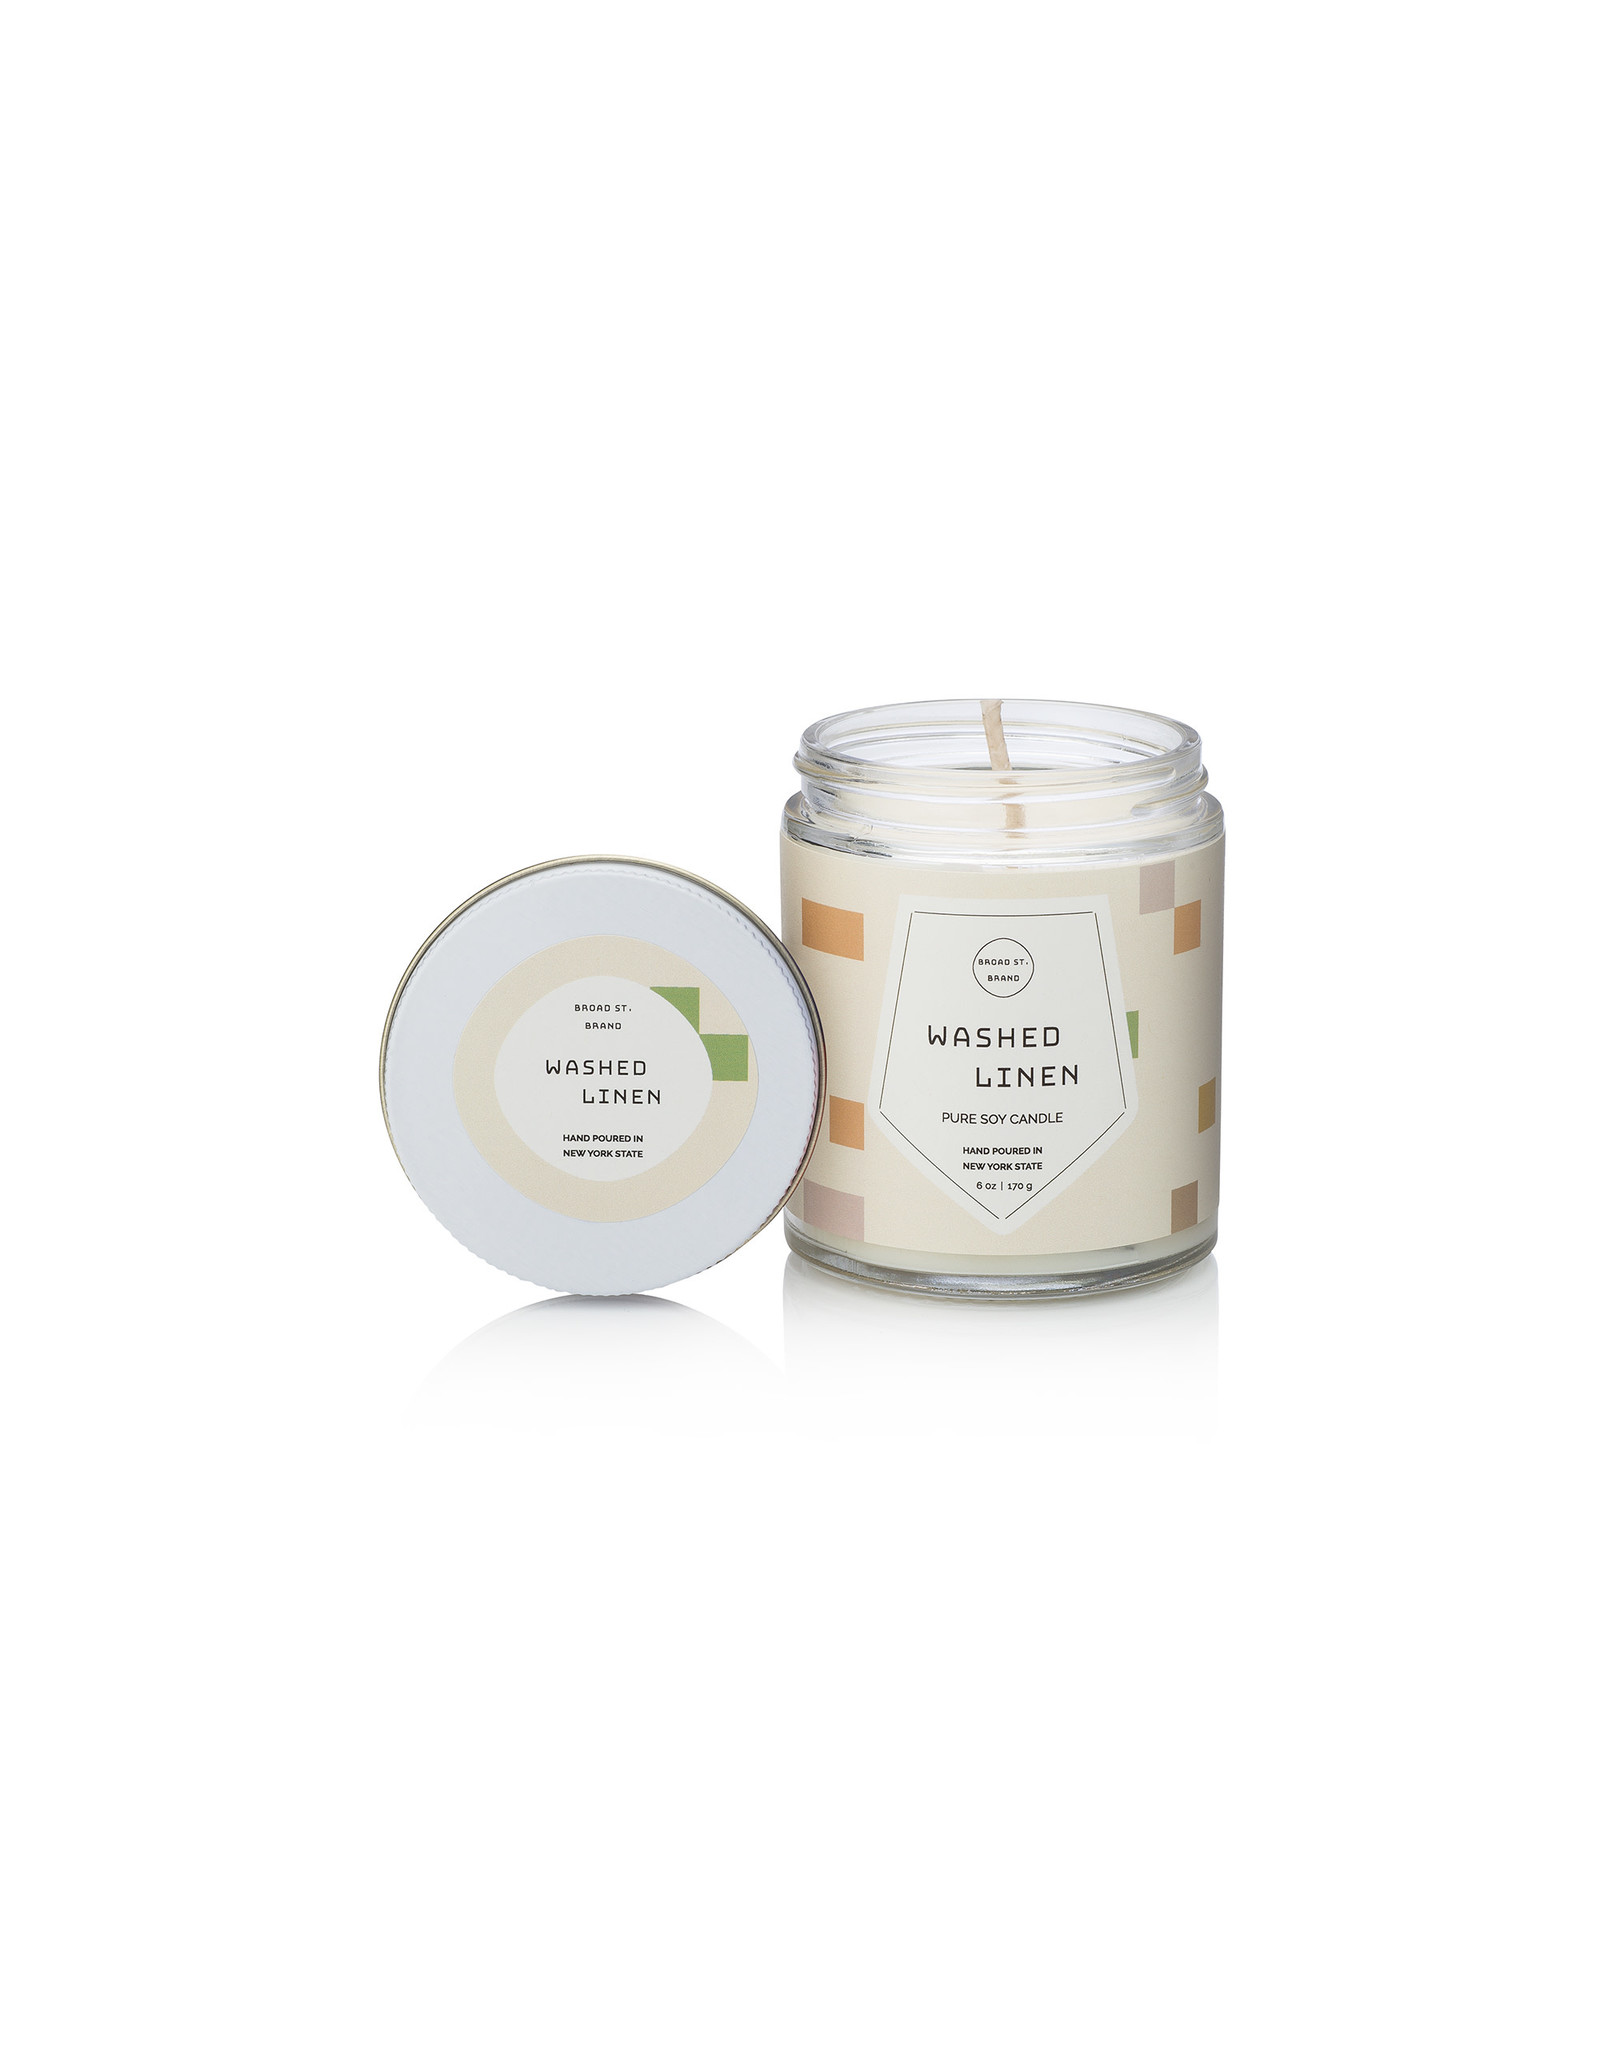 Washed Linen 6oz Candle